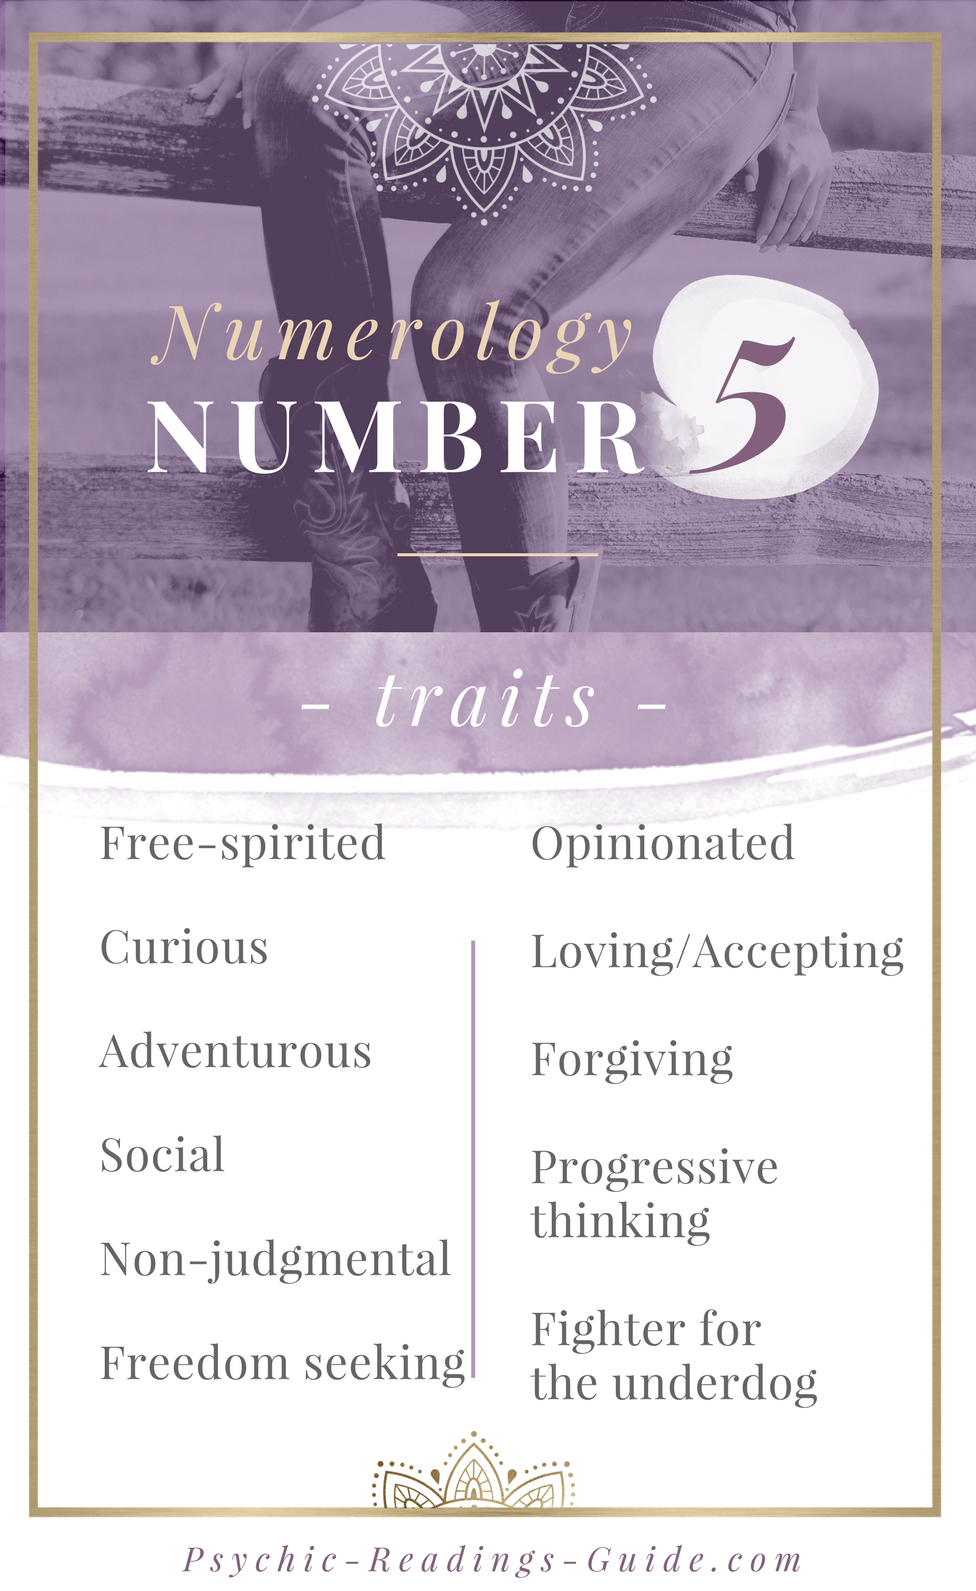 Numerology Number 5 - Life Path, Traits, Love, Career #number5 Numerology number 5 is the free-spirit! Read all of the number 5 traits, best love matches, careers, and challenges. #numerology #number5